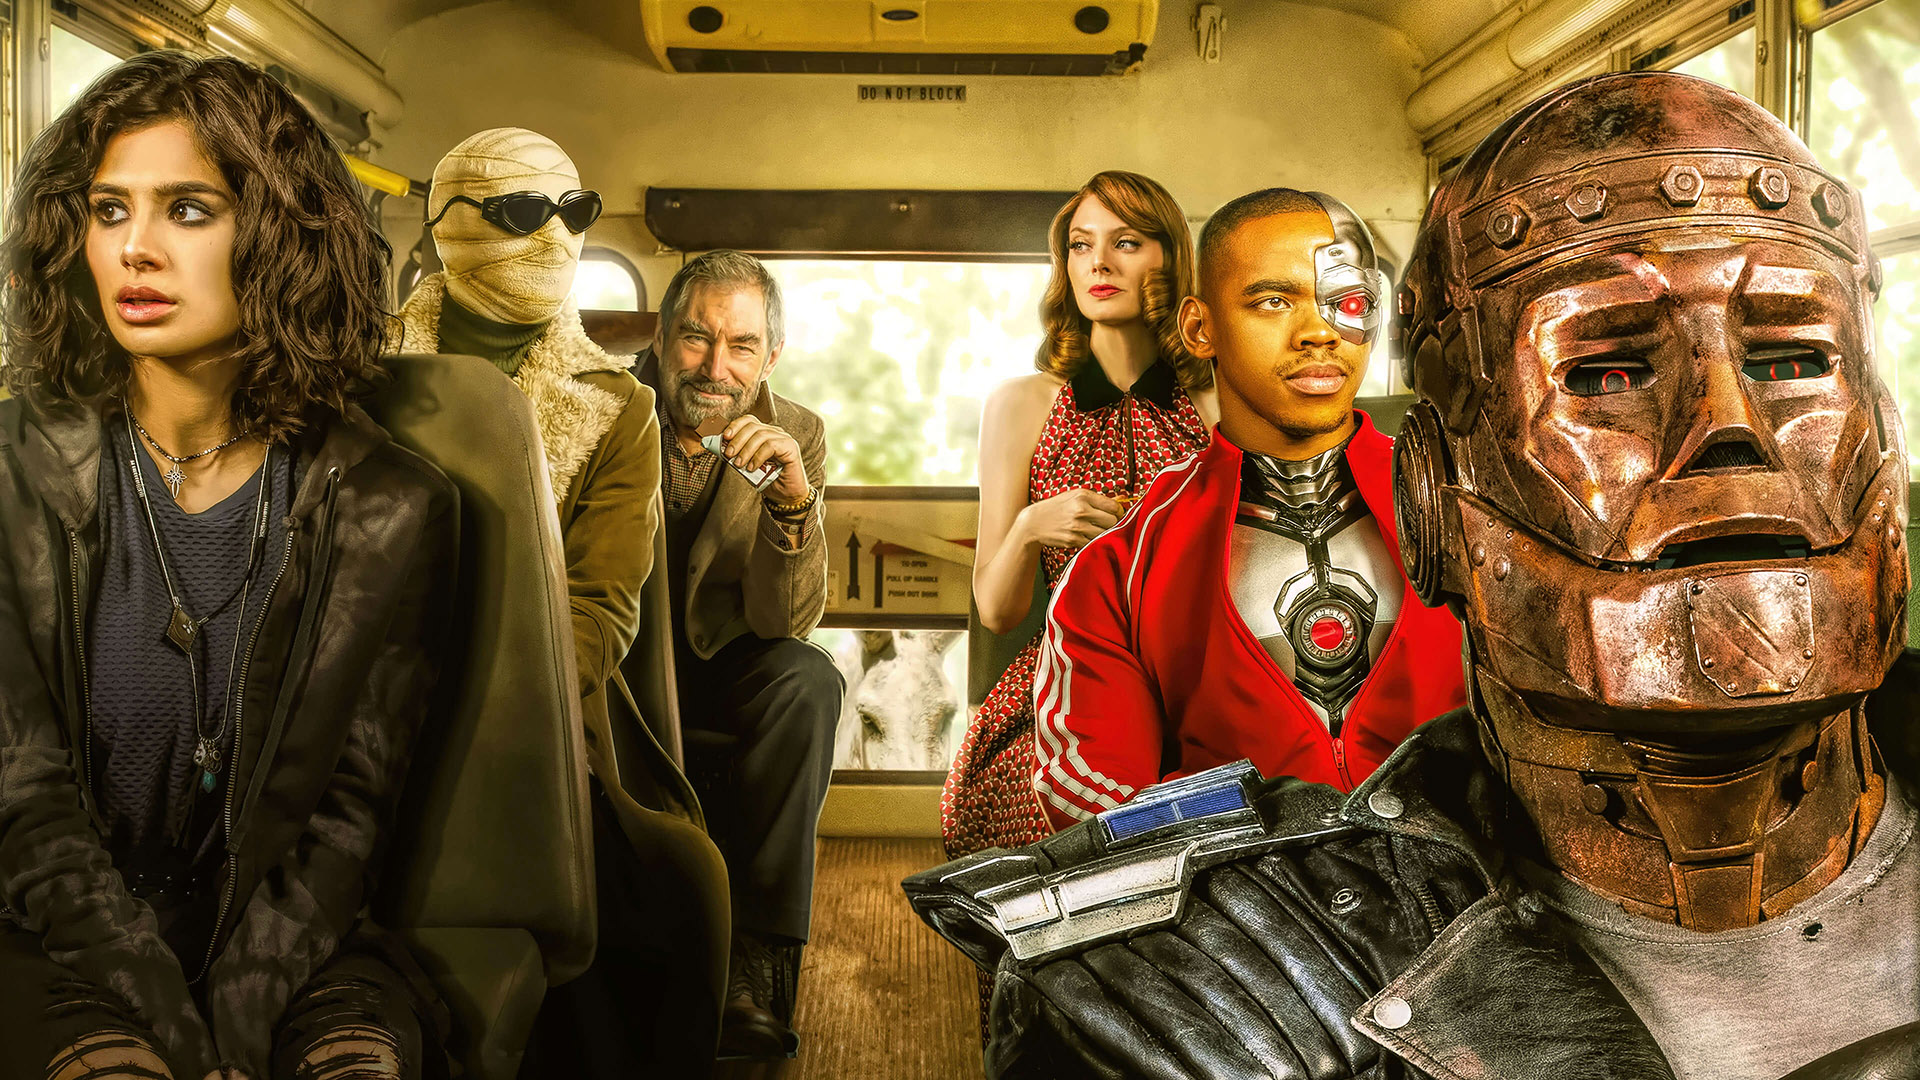 Second season Doom Patrol will start near the end of June